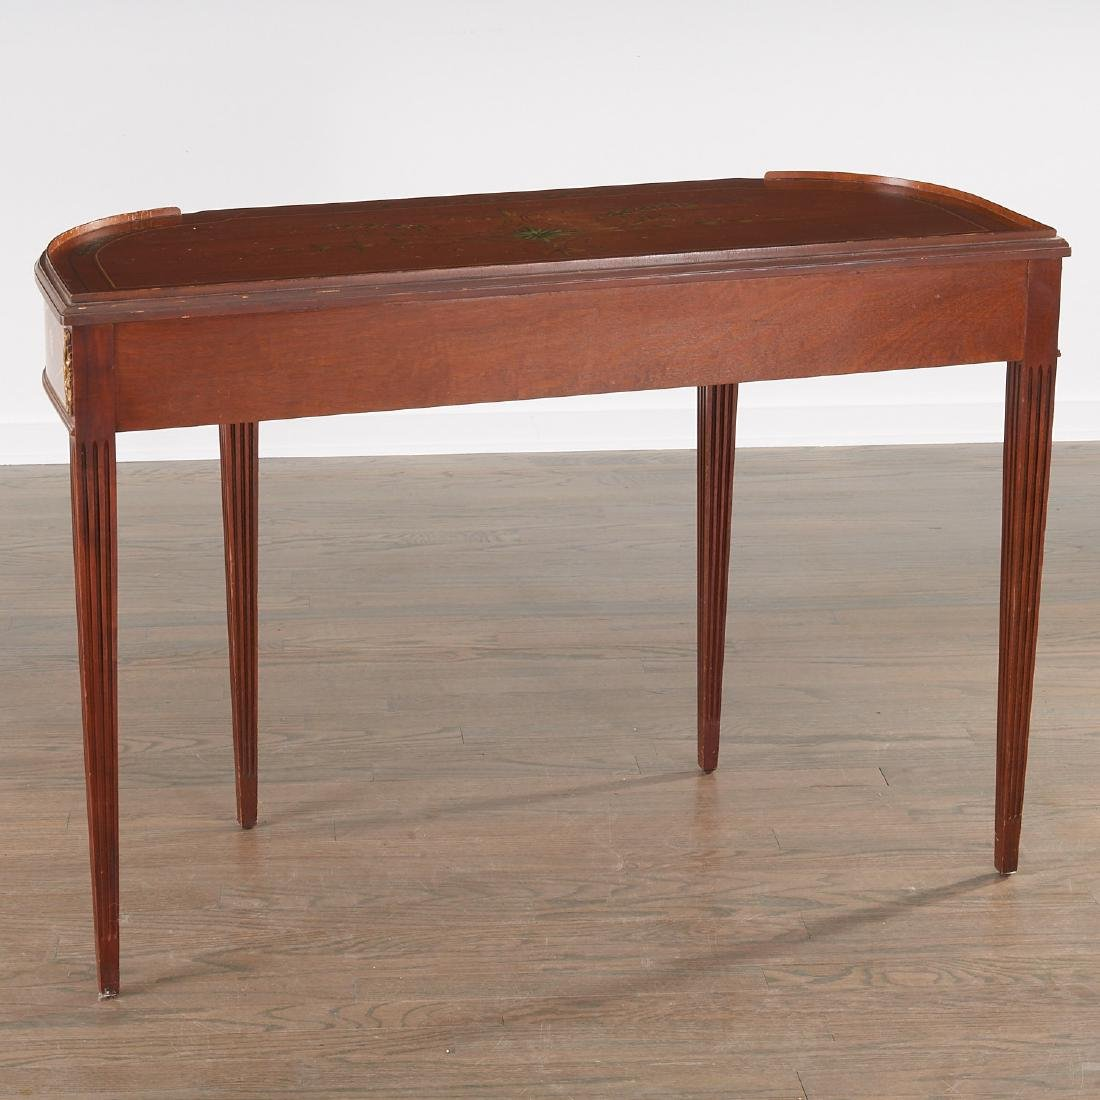 Adam style painted mahogany console - 8